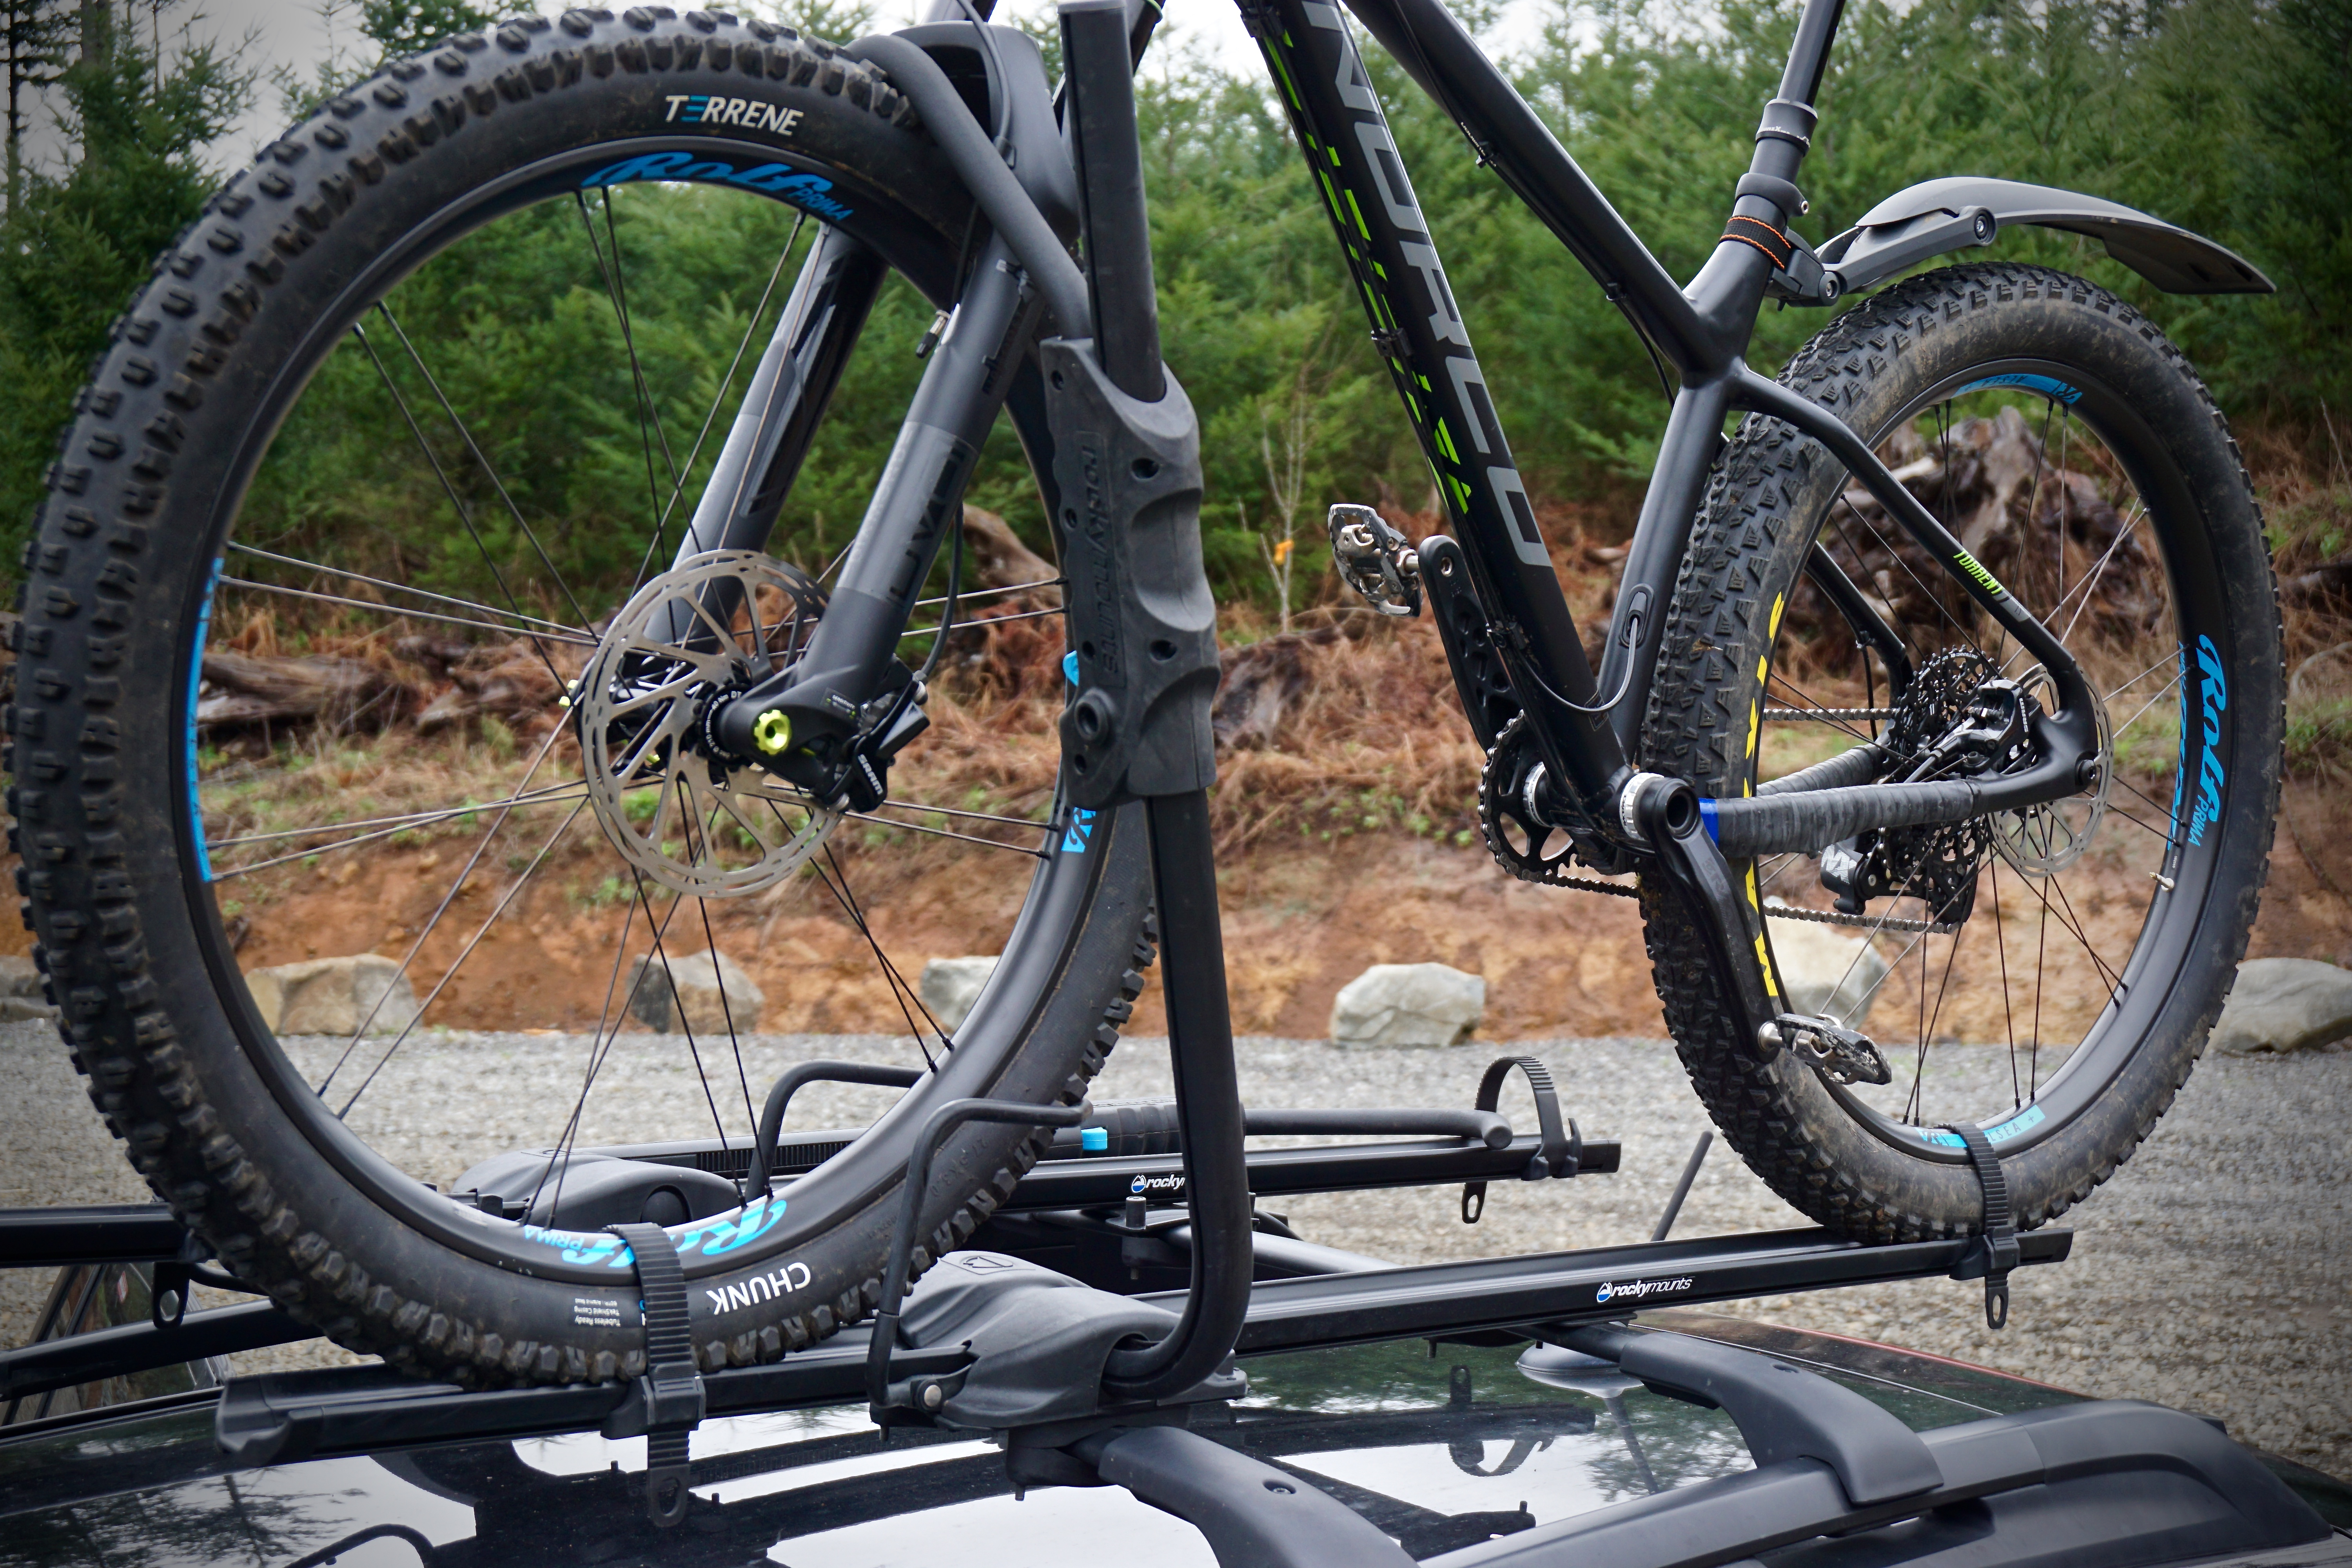 Despite The Convenience Of A Pickup And Growing Popularity Car Hitch Mounts I Would Guess Roof Rack Remains Most Popular Bike Hauling